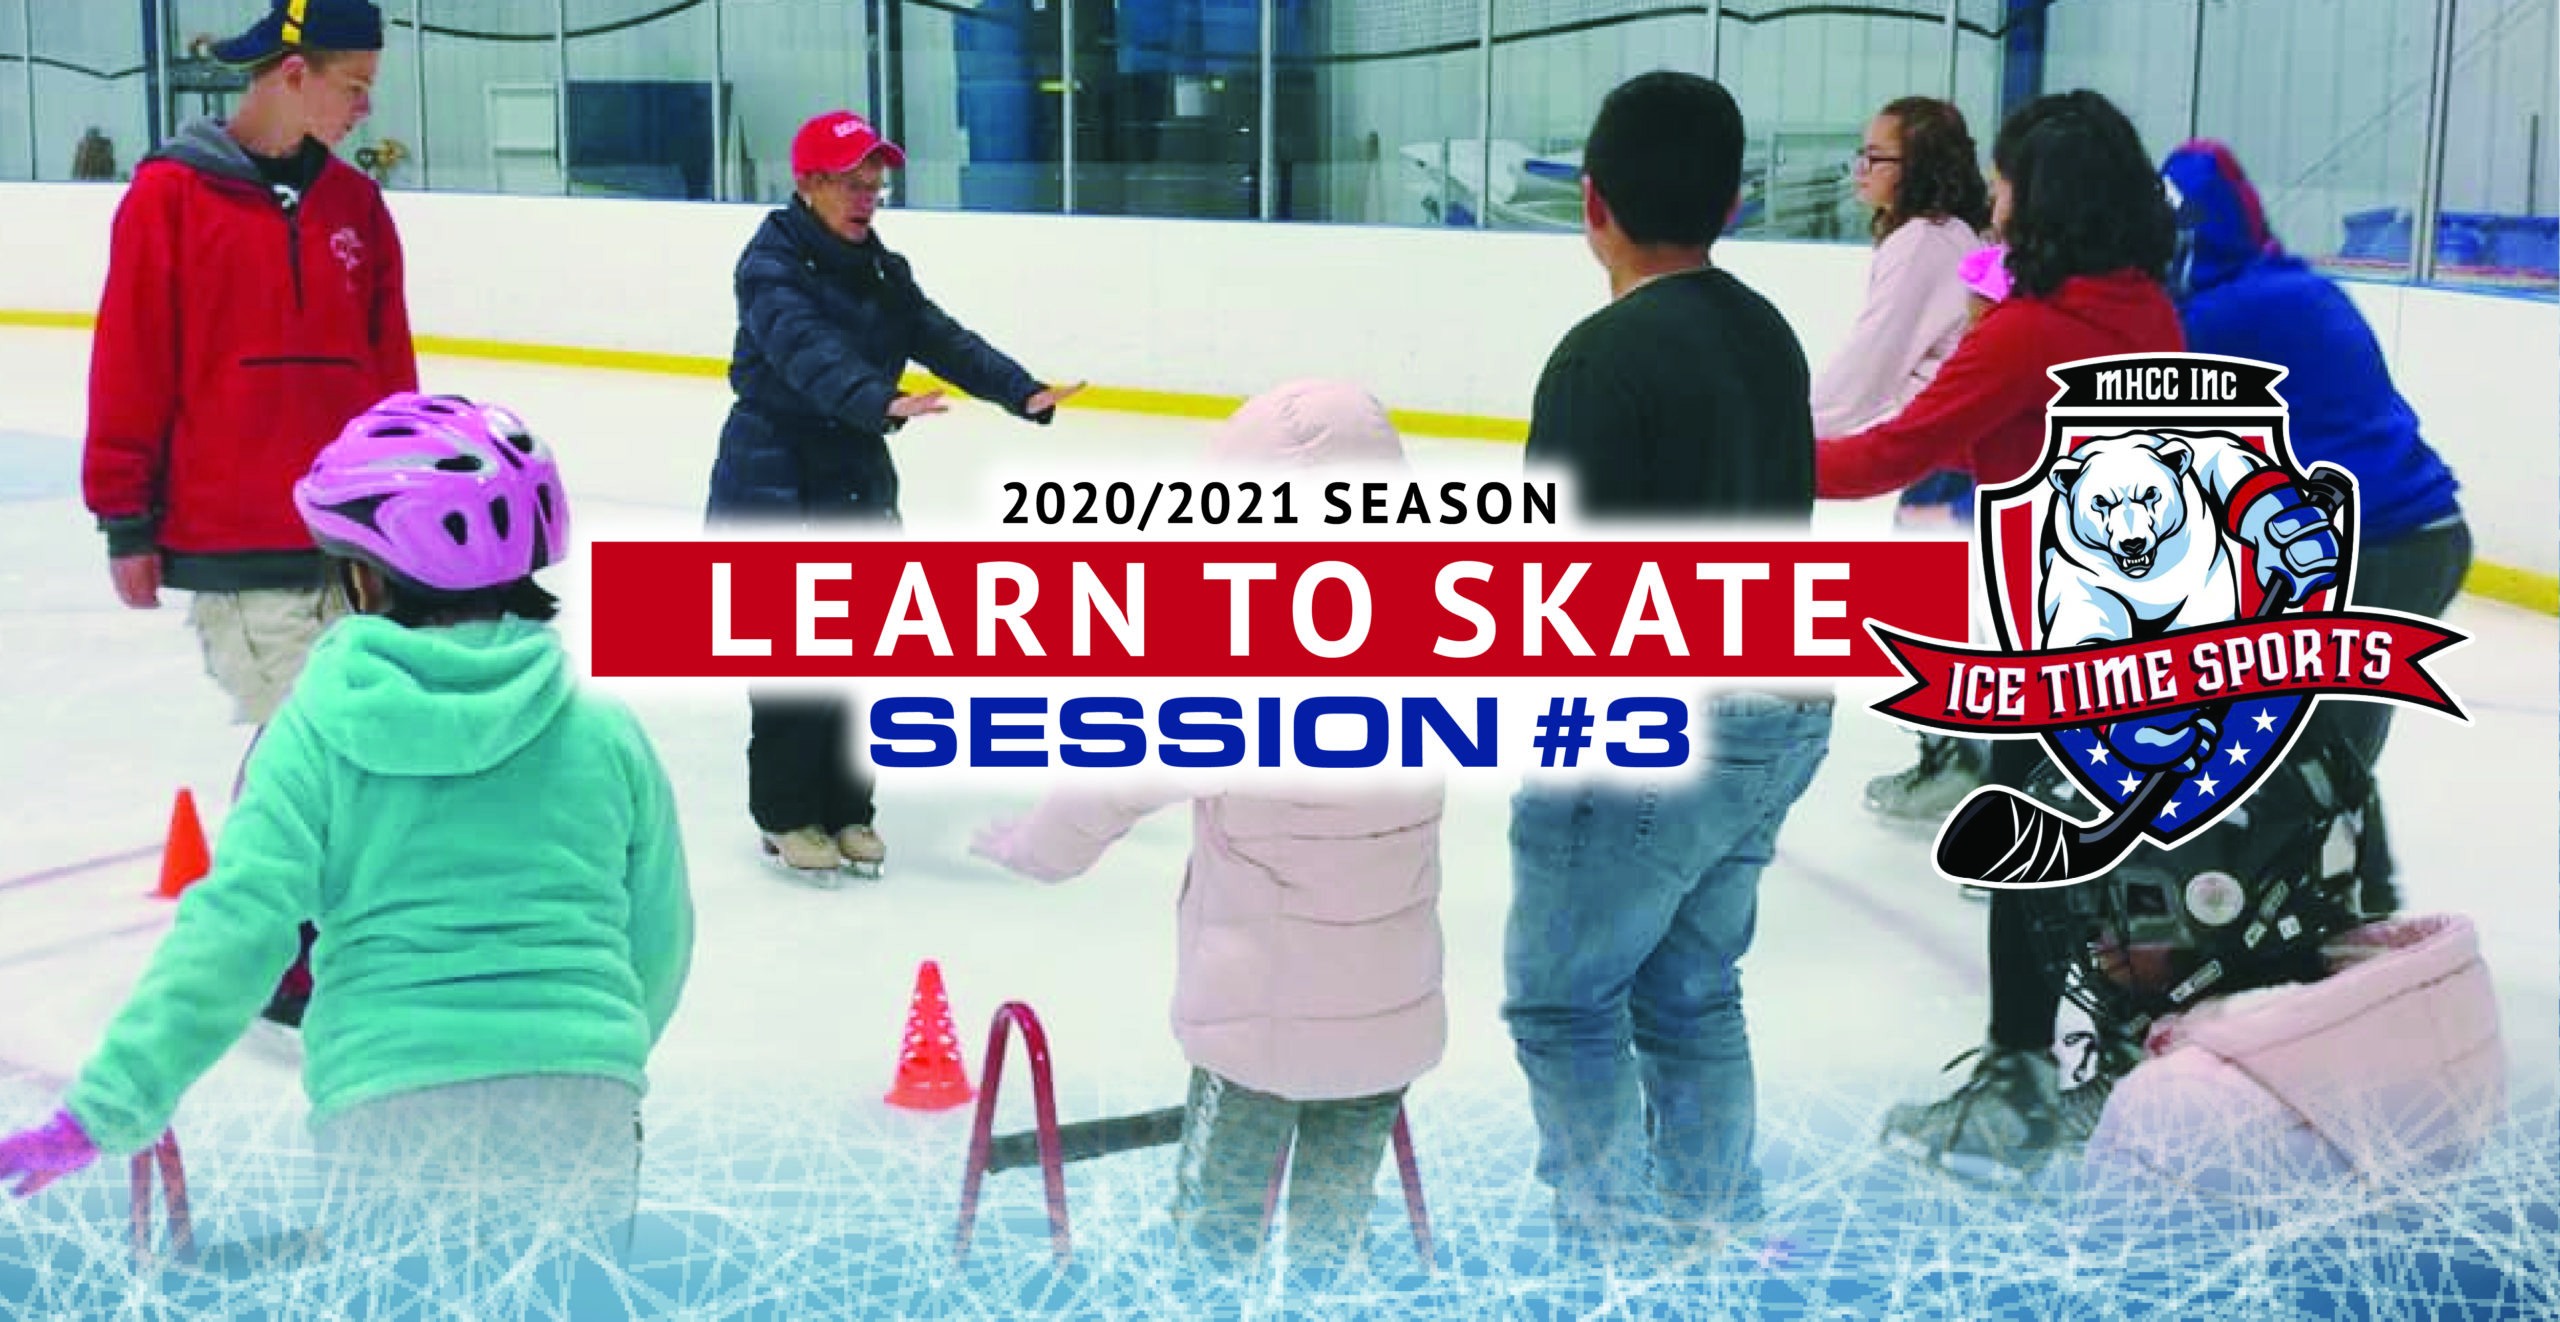 Learn to Skate – Session #3